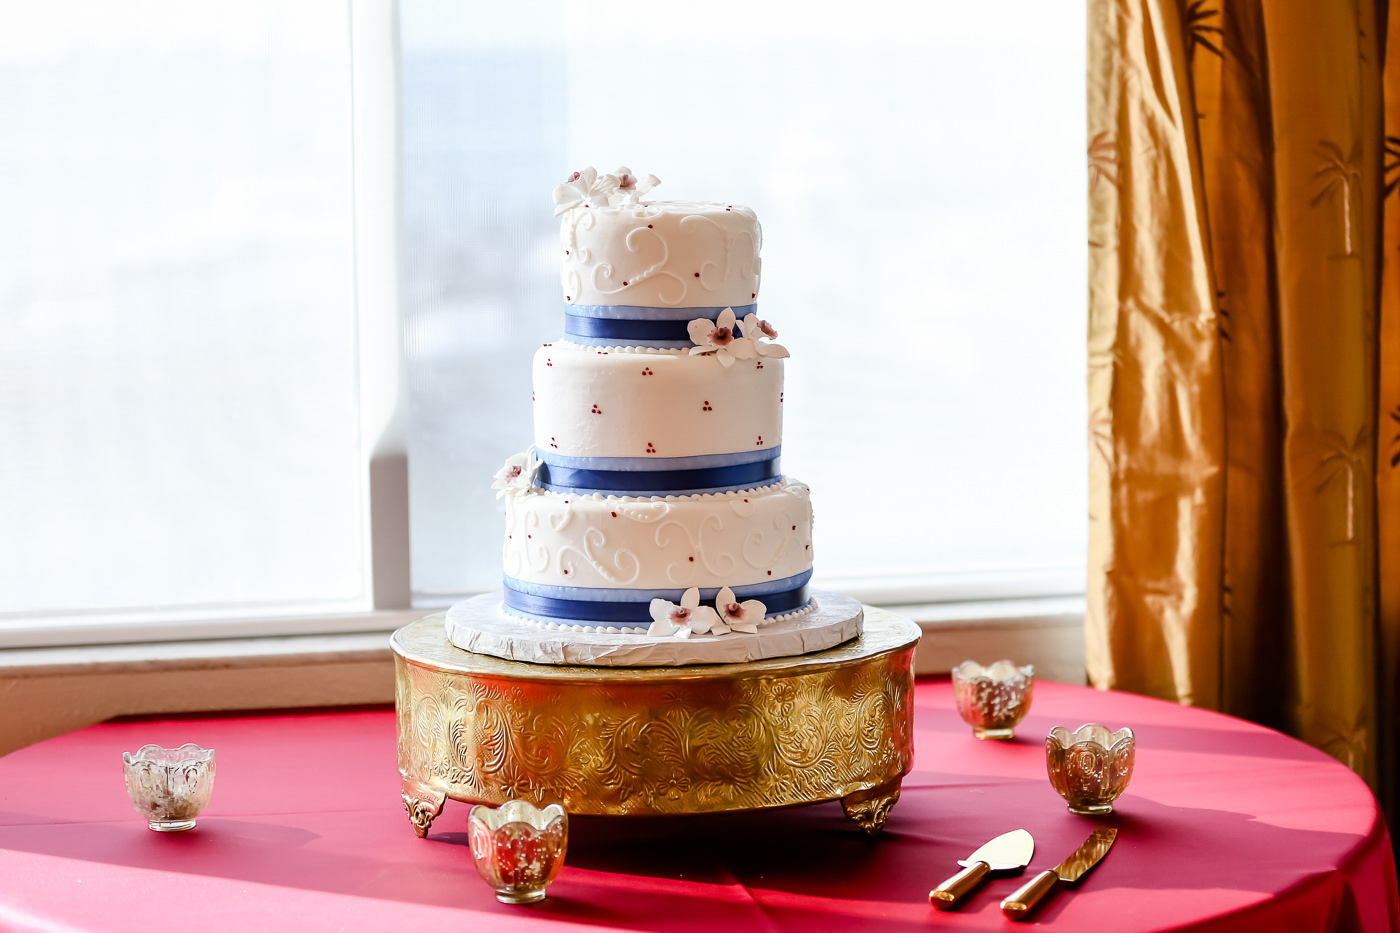 Three Tier White Classic Wedding Cake With Swirls Red Accents Blue Ribbons And Sugar Flowers On Gold Cake Stand And Table With Maroon Linen Tampa Bay Wedding Photographer Lifelong Photography Studios